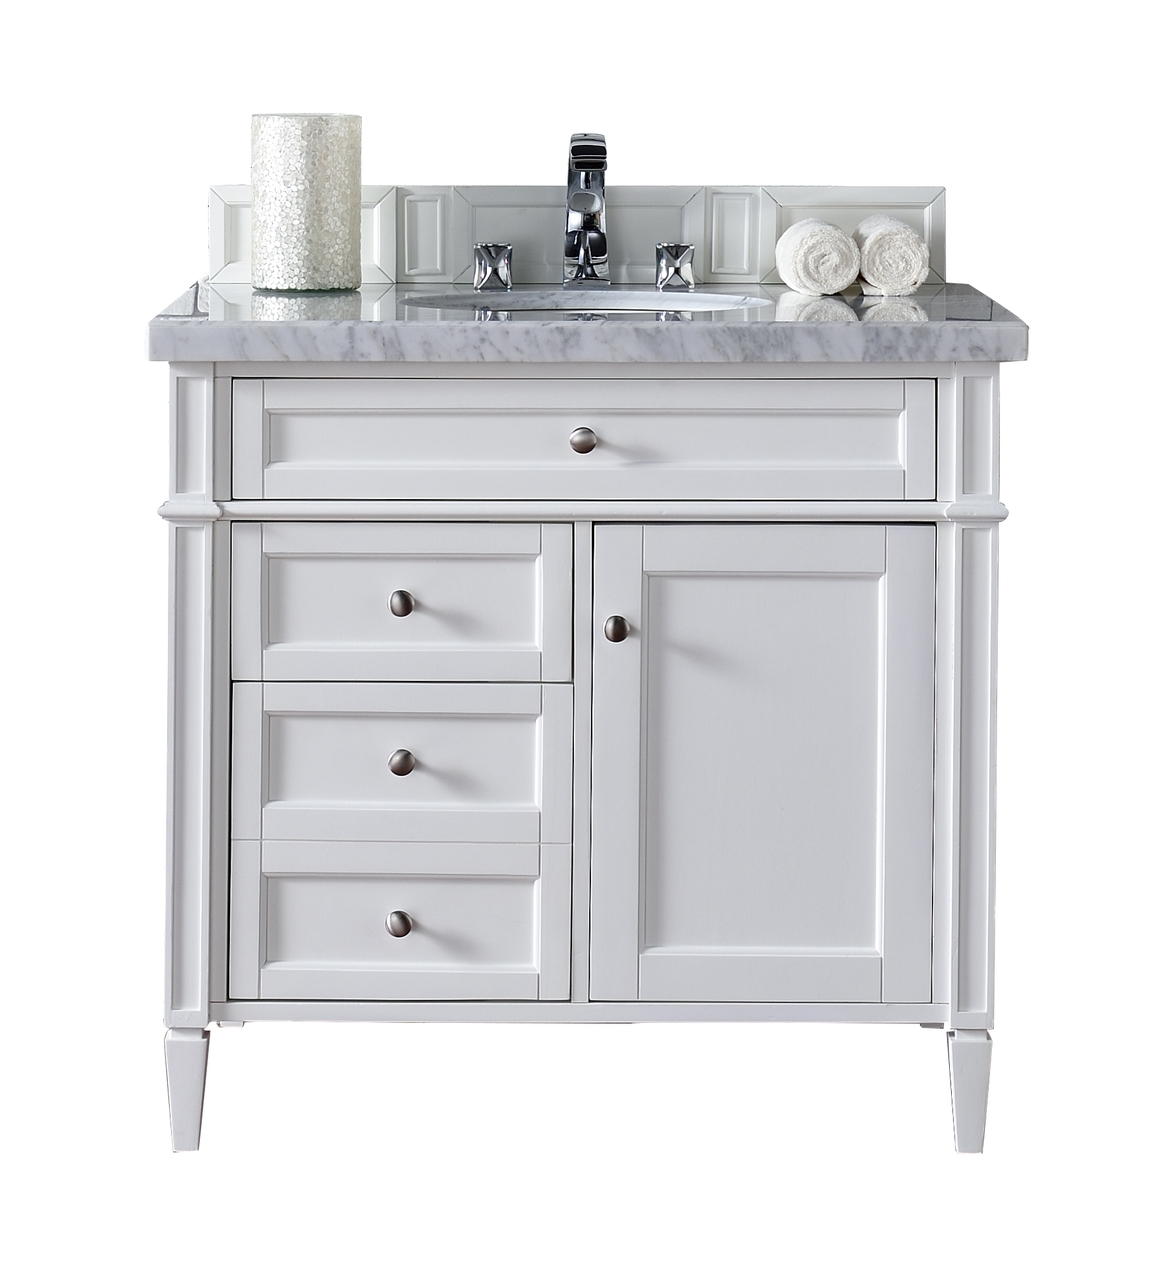 36 Inch White Bathroom Vanity With Drawers